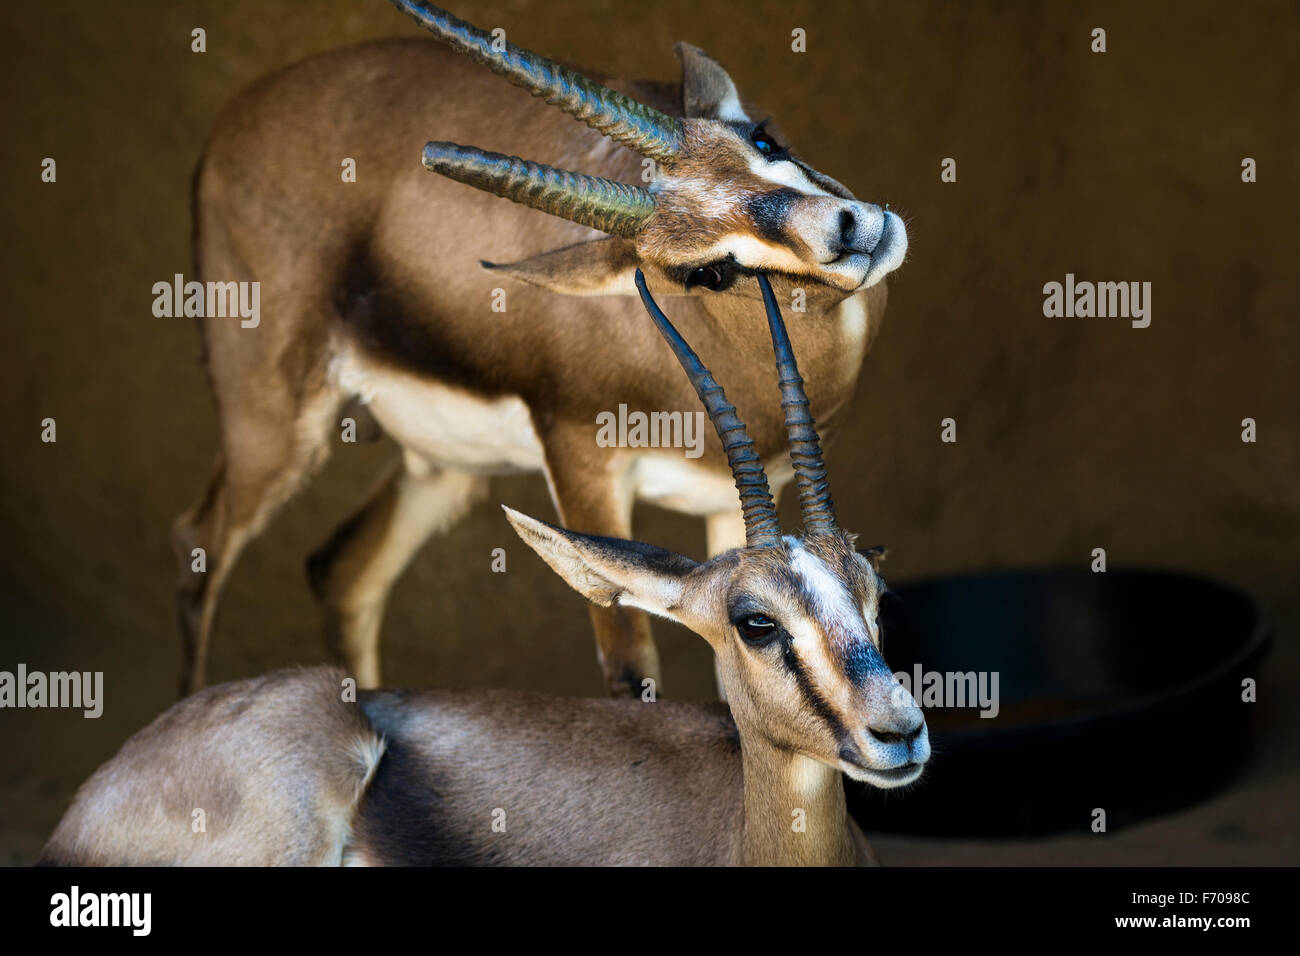 Two gazelles rest in a shaded area while one scratches its chin on the horn of another gazelle. - Stock Image